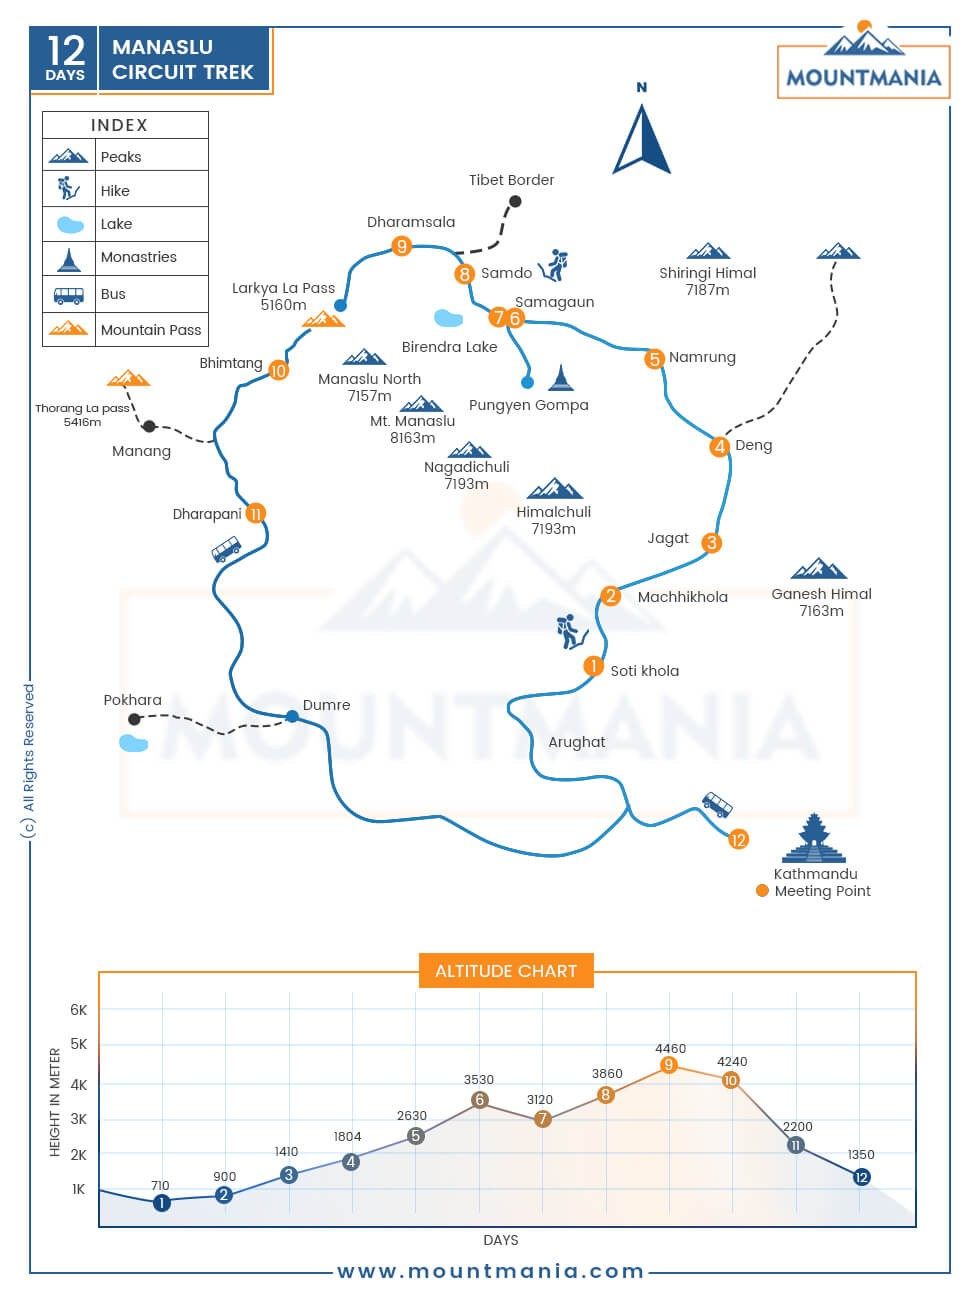 Manaslu Circuit Trek map